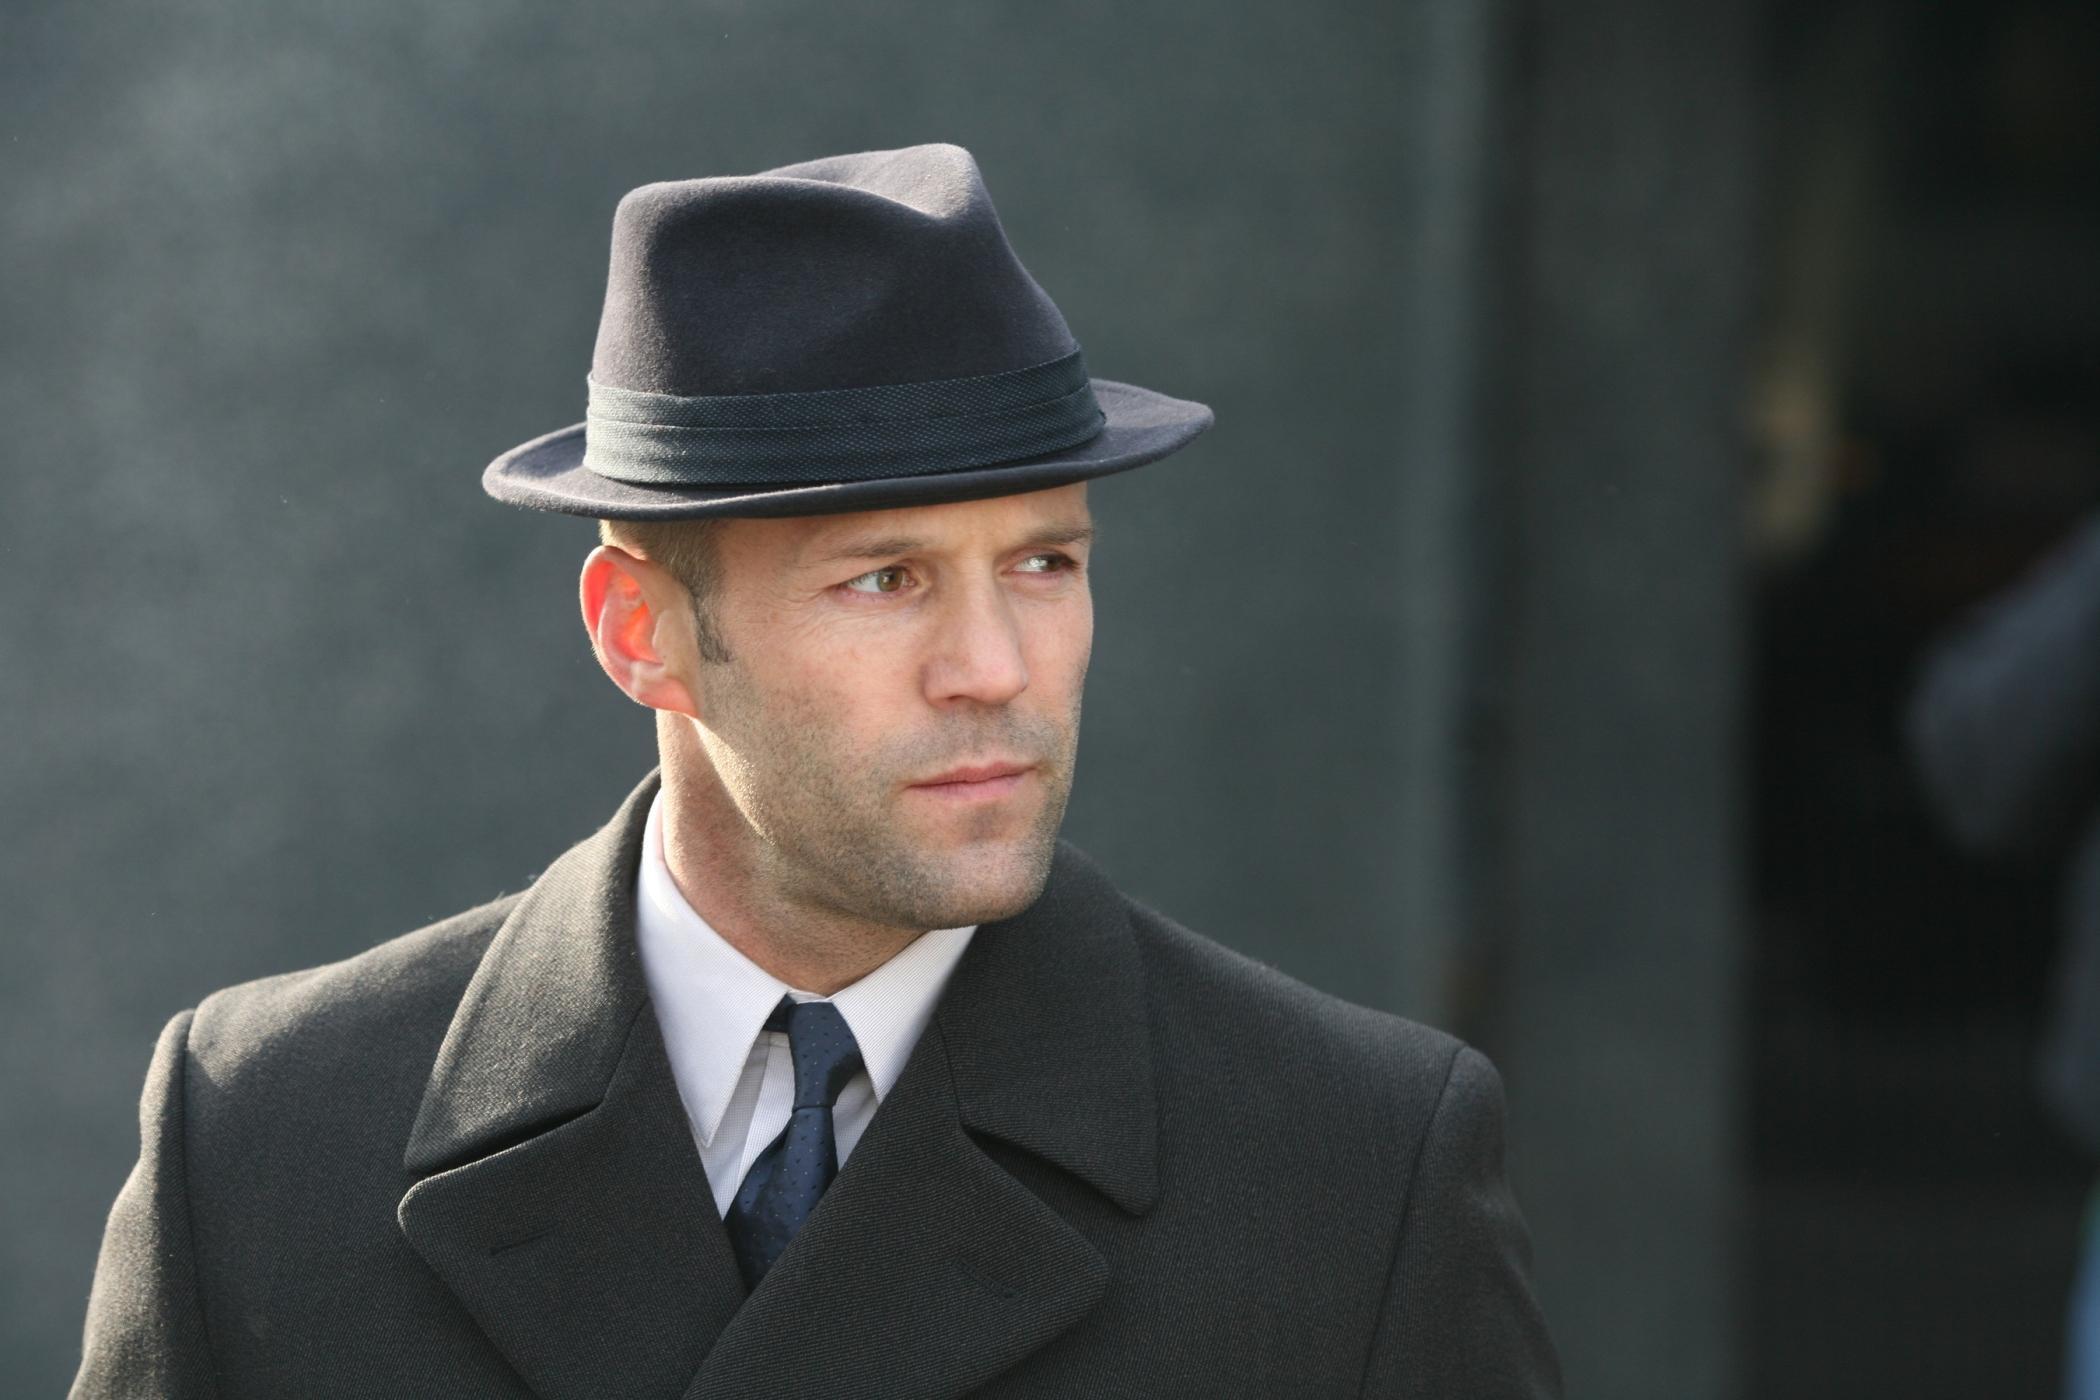 jason statham young